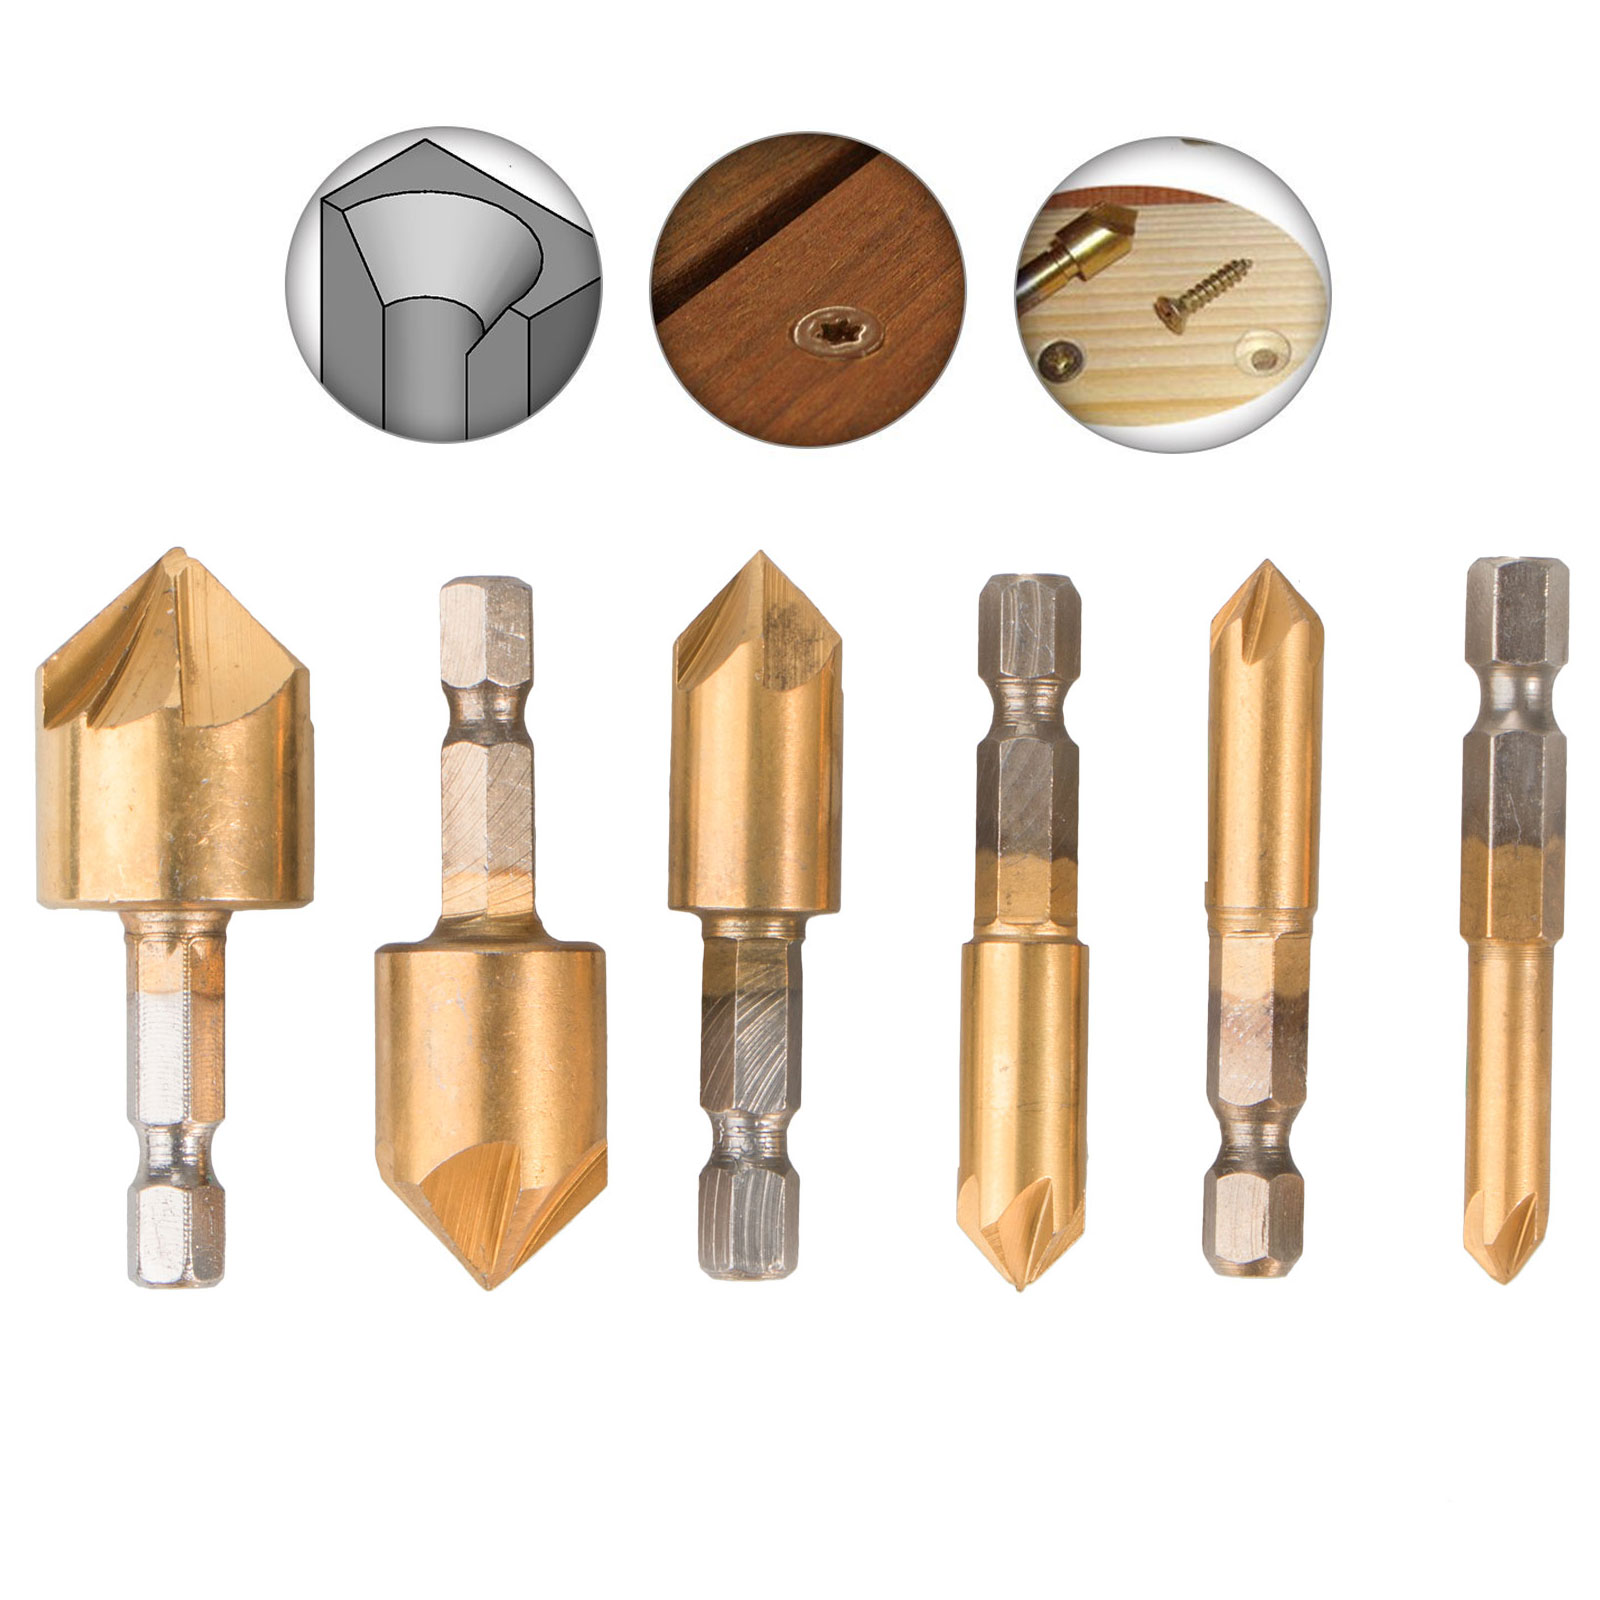 6 Pack Countersink Drill Bit Set, 1/4'' Hex Shank HSS 5 Flute 90 Degree Center Punch Tool Sets for Wood Quick Change Bit 6/8/9/12/16/19mm